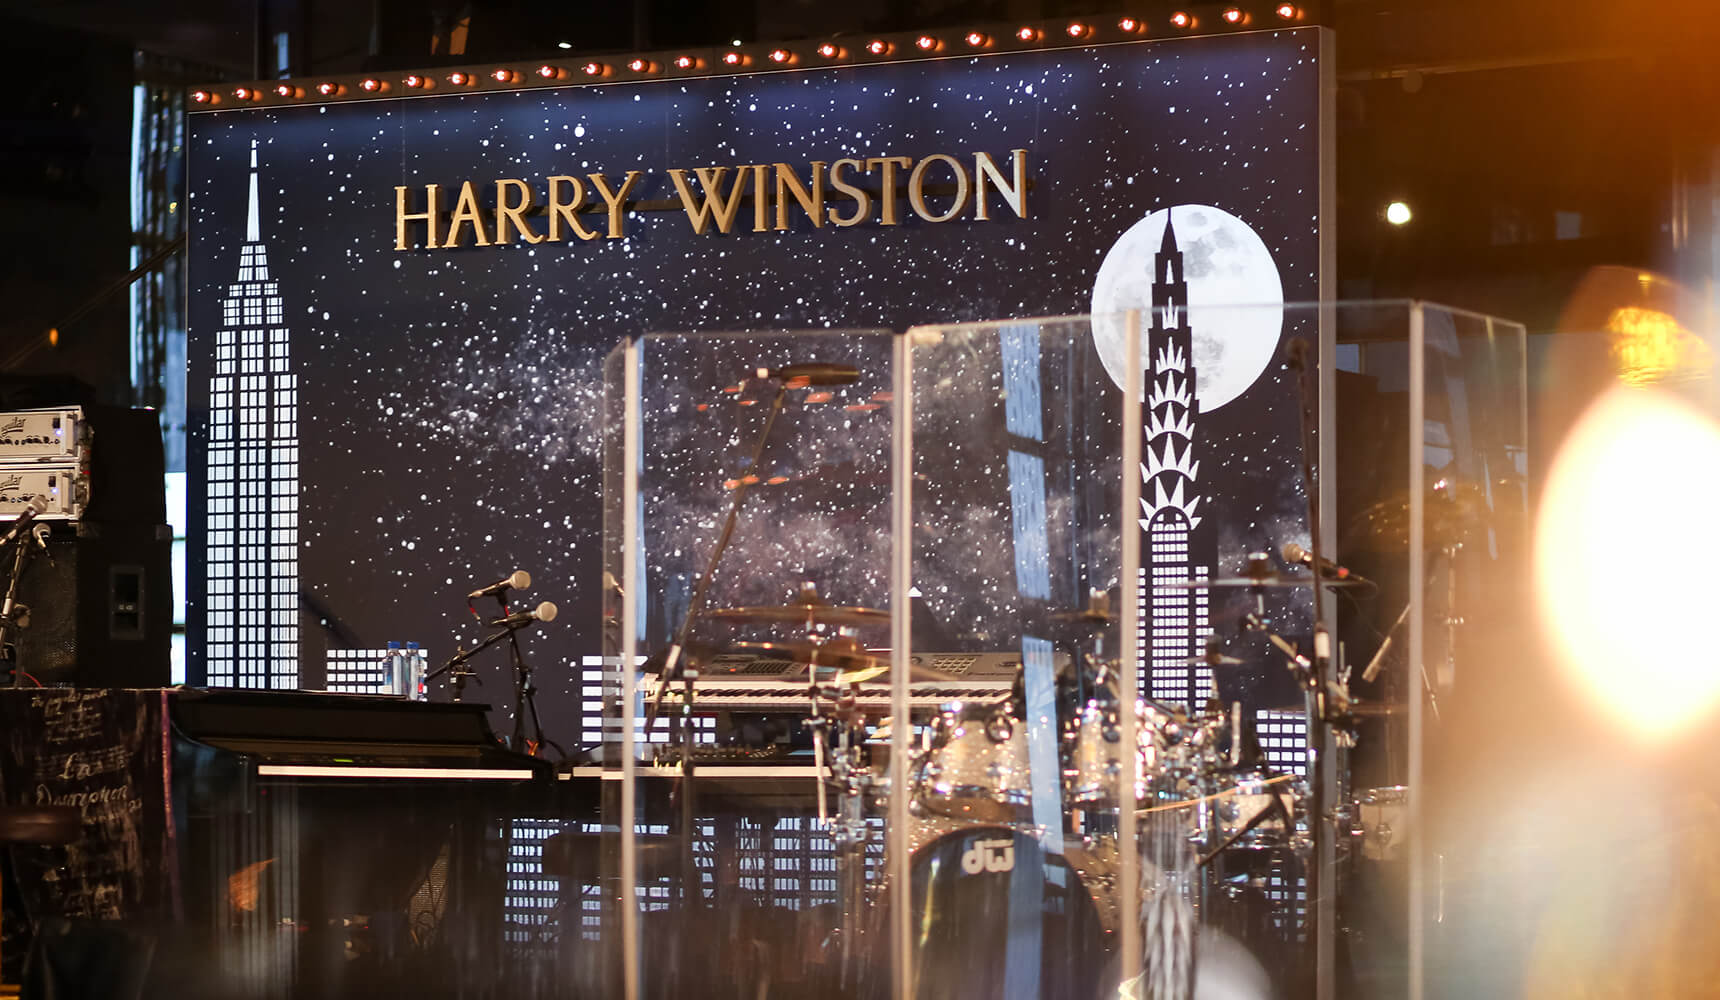 Harry Winston Celebrates the Launch of its New York Collection